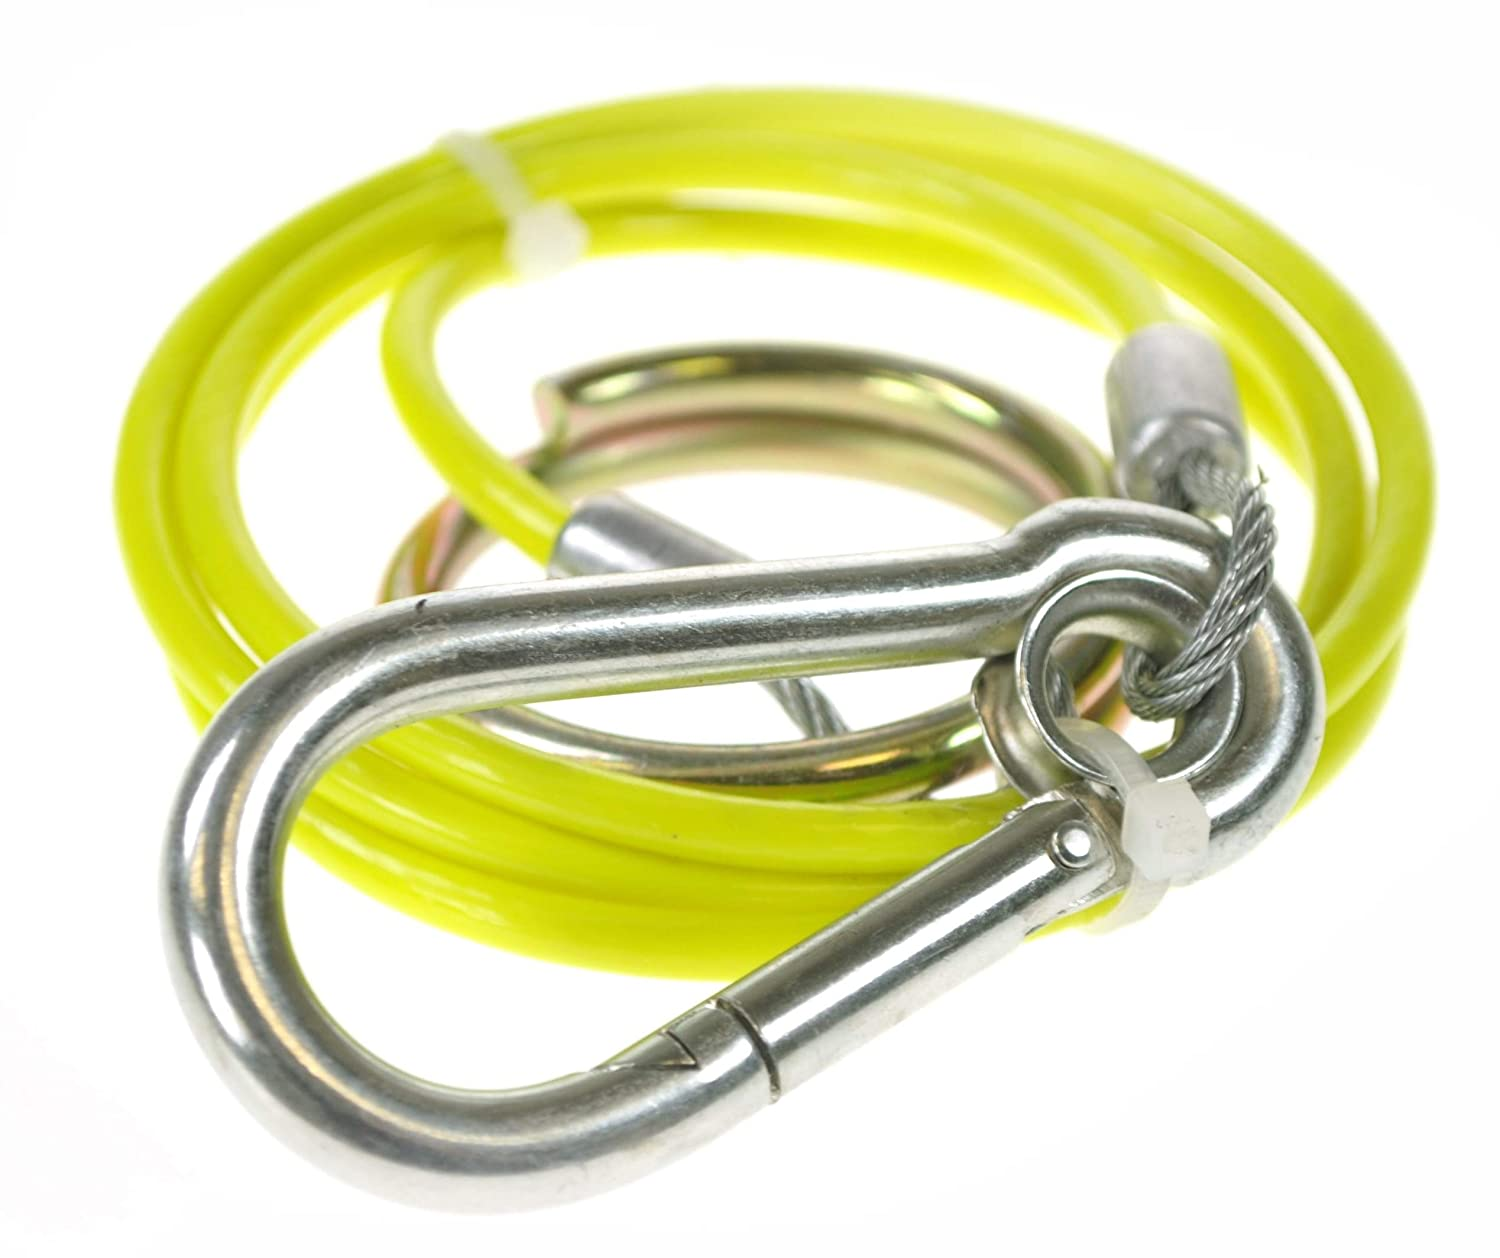 BITS4REASONS NEW MODEL MAYPOLE MP5015B BREAKAWAY CABLE PVC HI VIS YELLOW 1M x 3MM SAFETY TRAILER CARAVAN CABLE